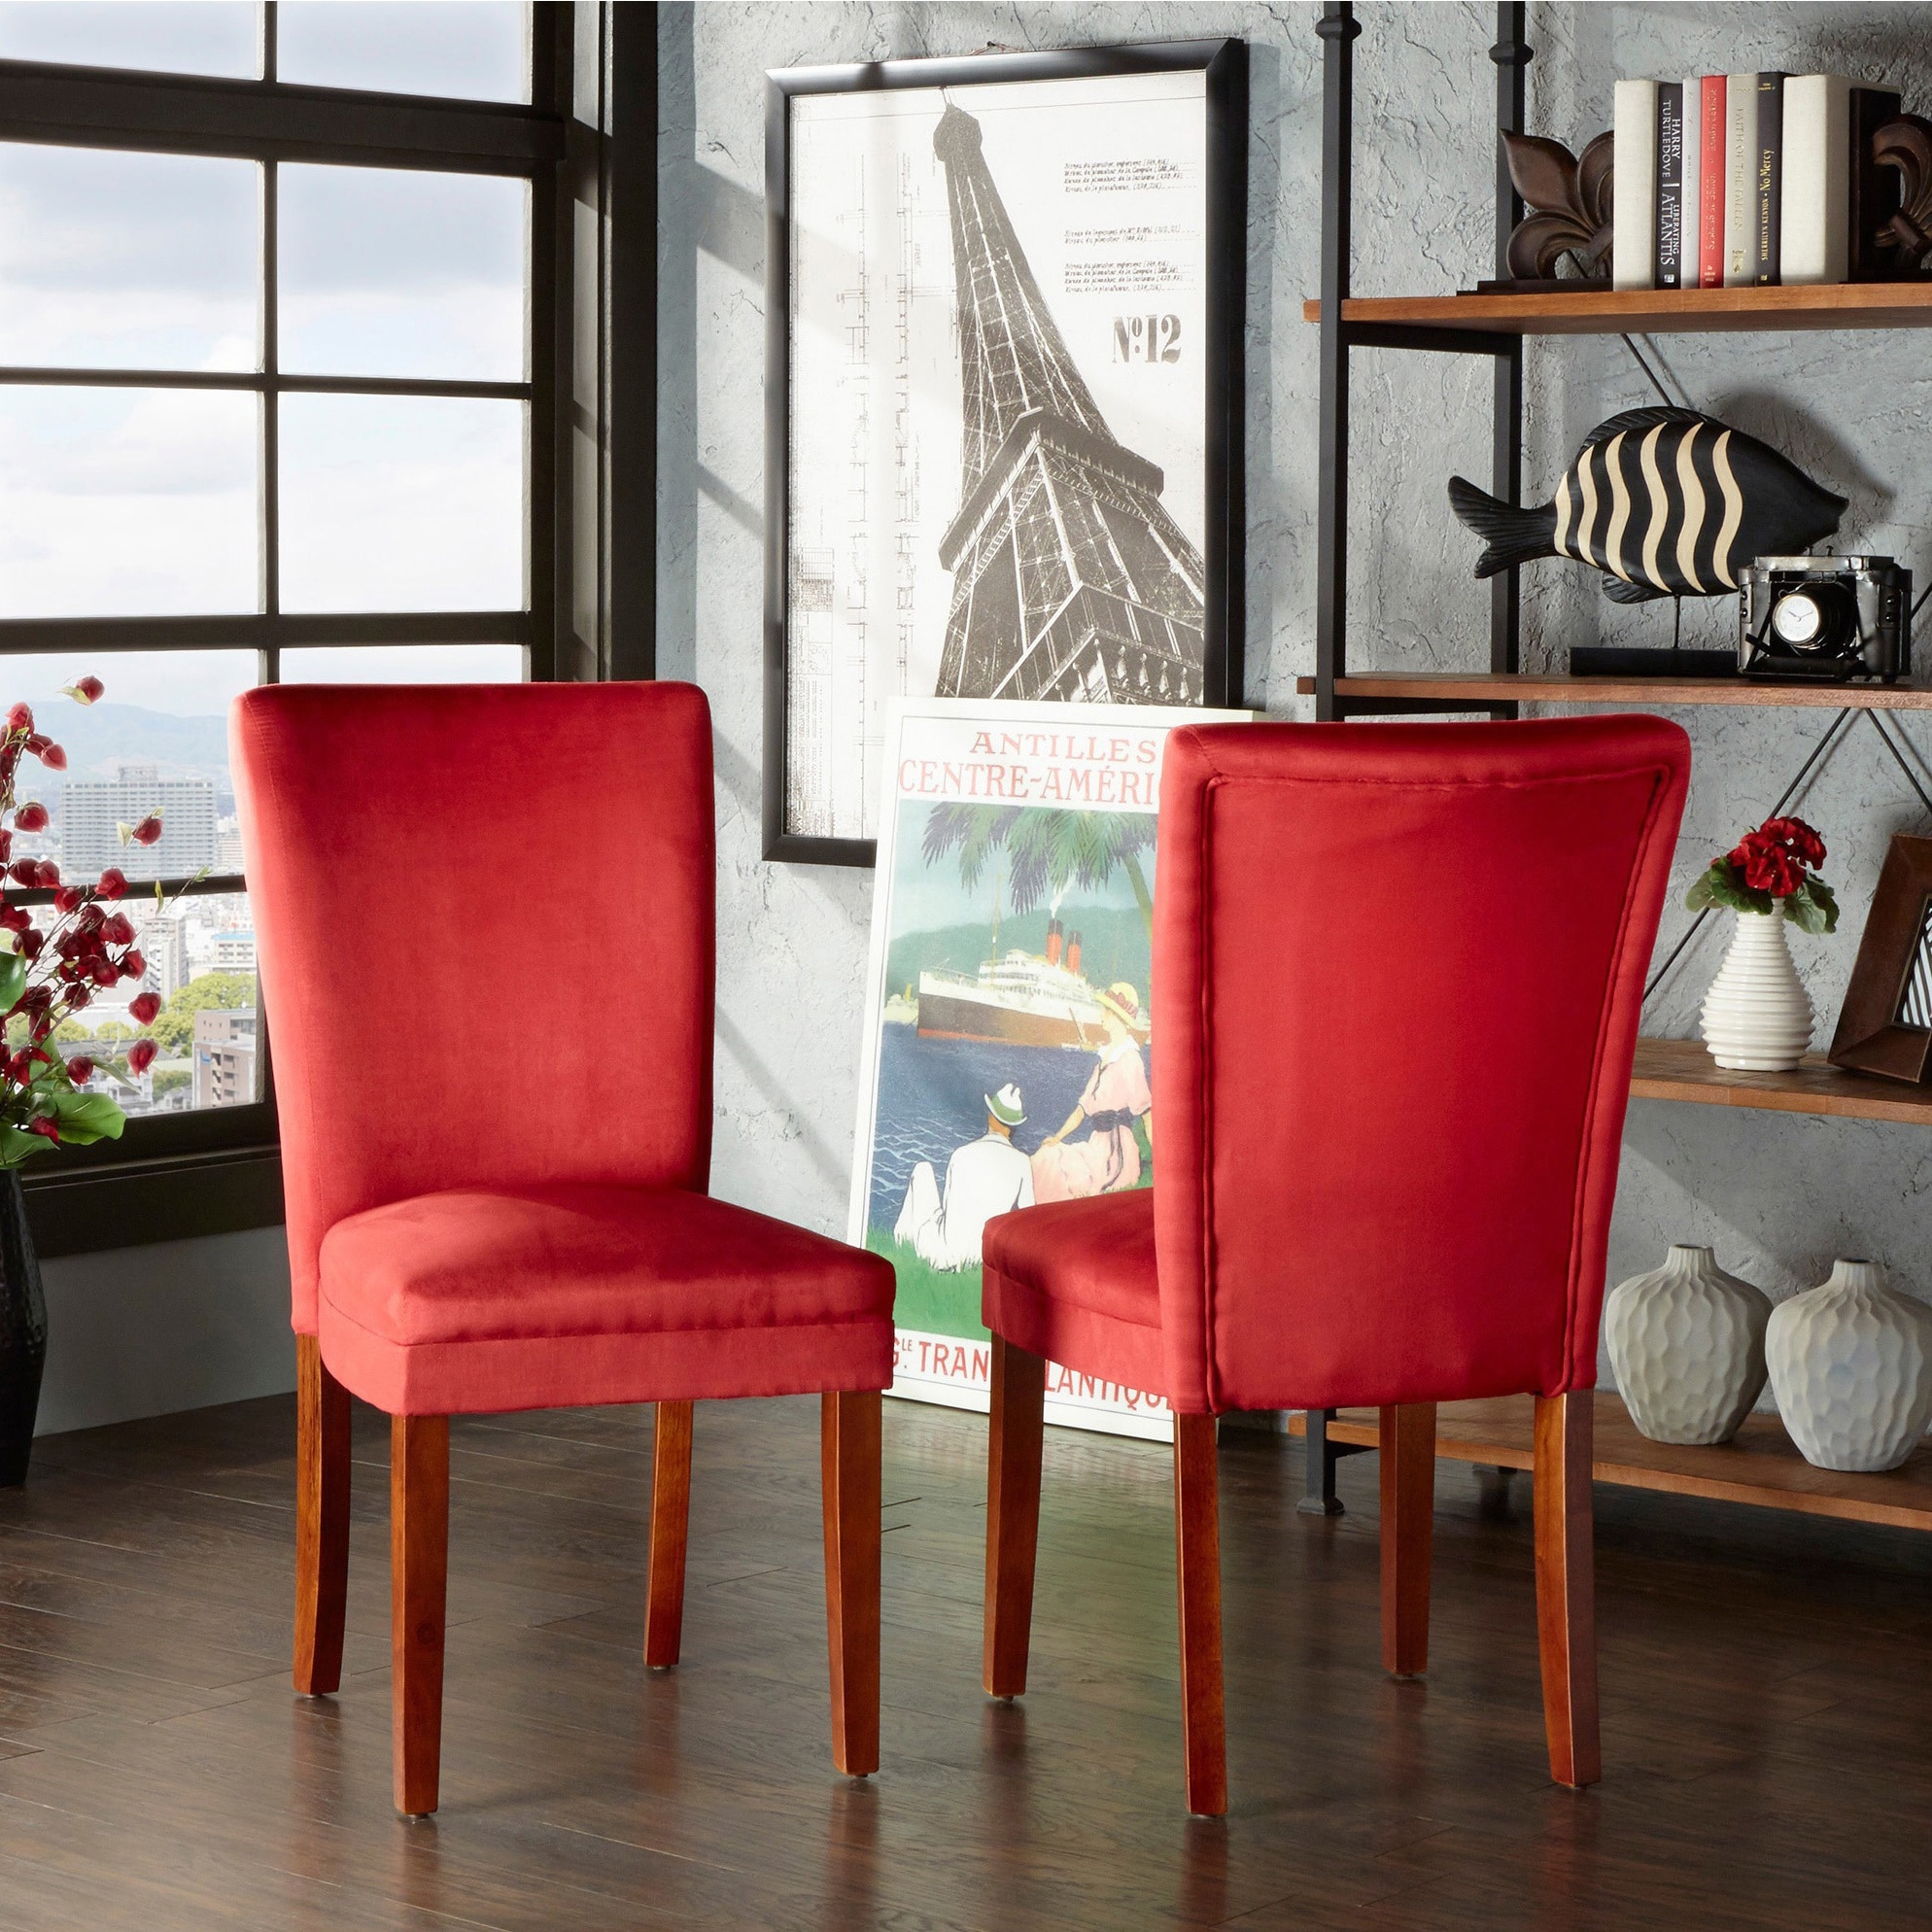 Buy red kitchen dining room chairs online at overstock com our best dining room bar furniture deals